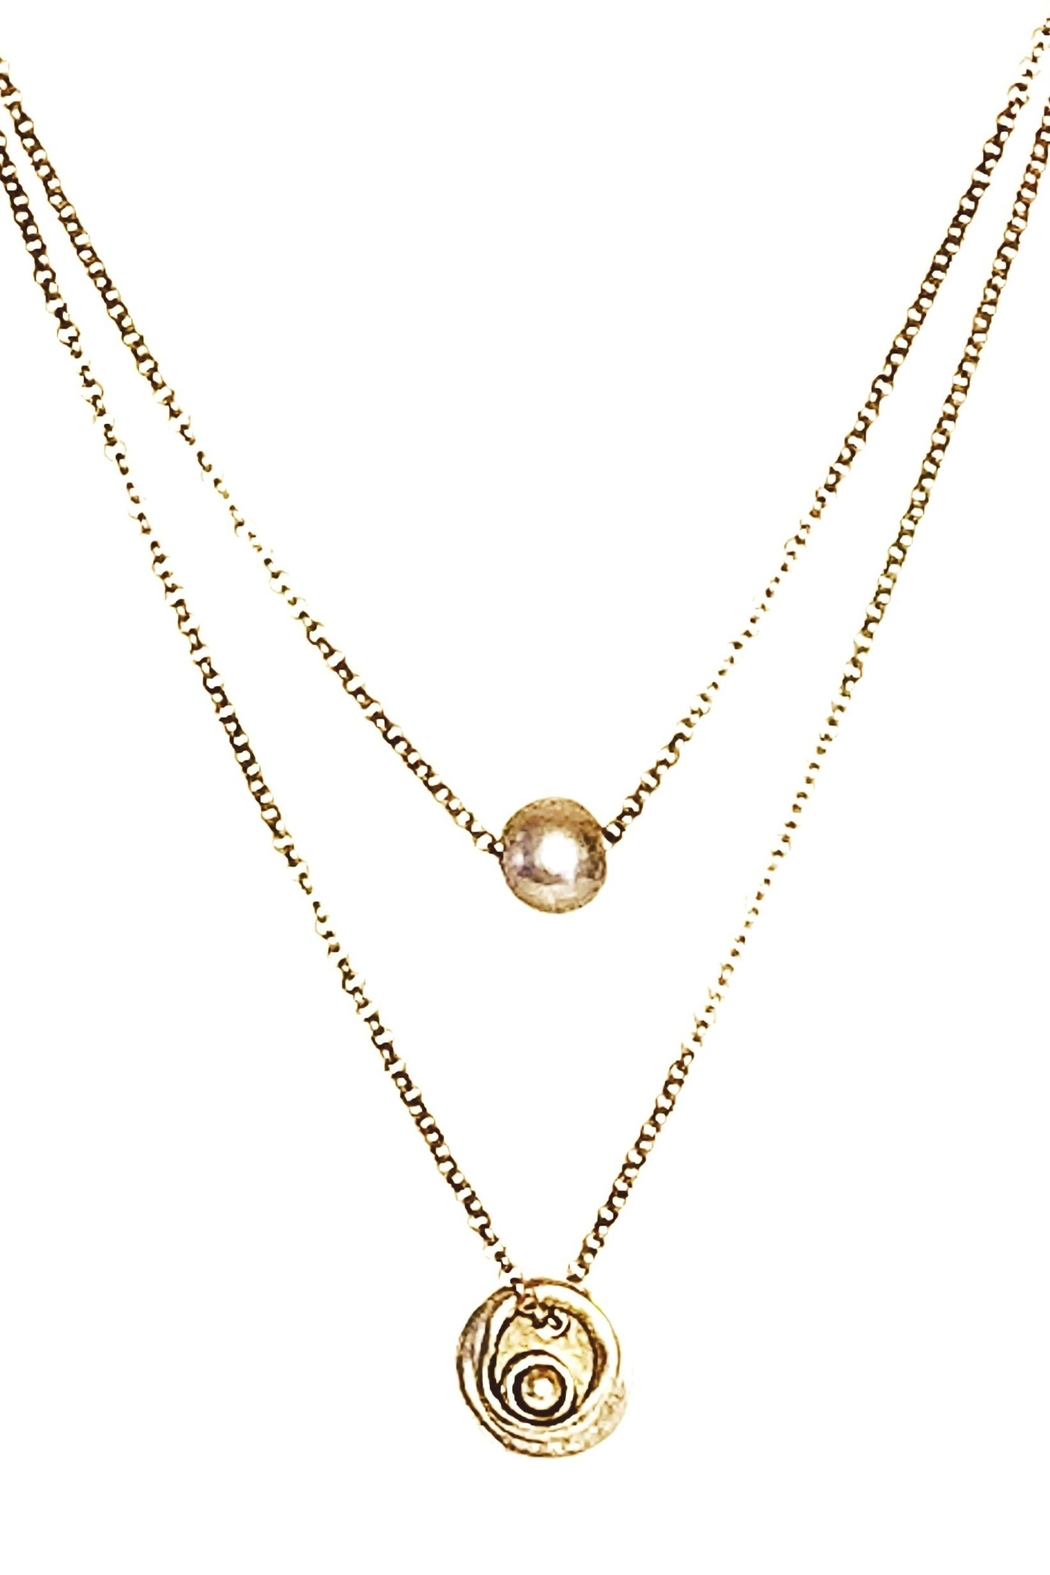 76ceb19dea51ba Volare Pearl Charm Necklace from Maryland by Leila Jewels — Shoptiques